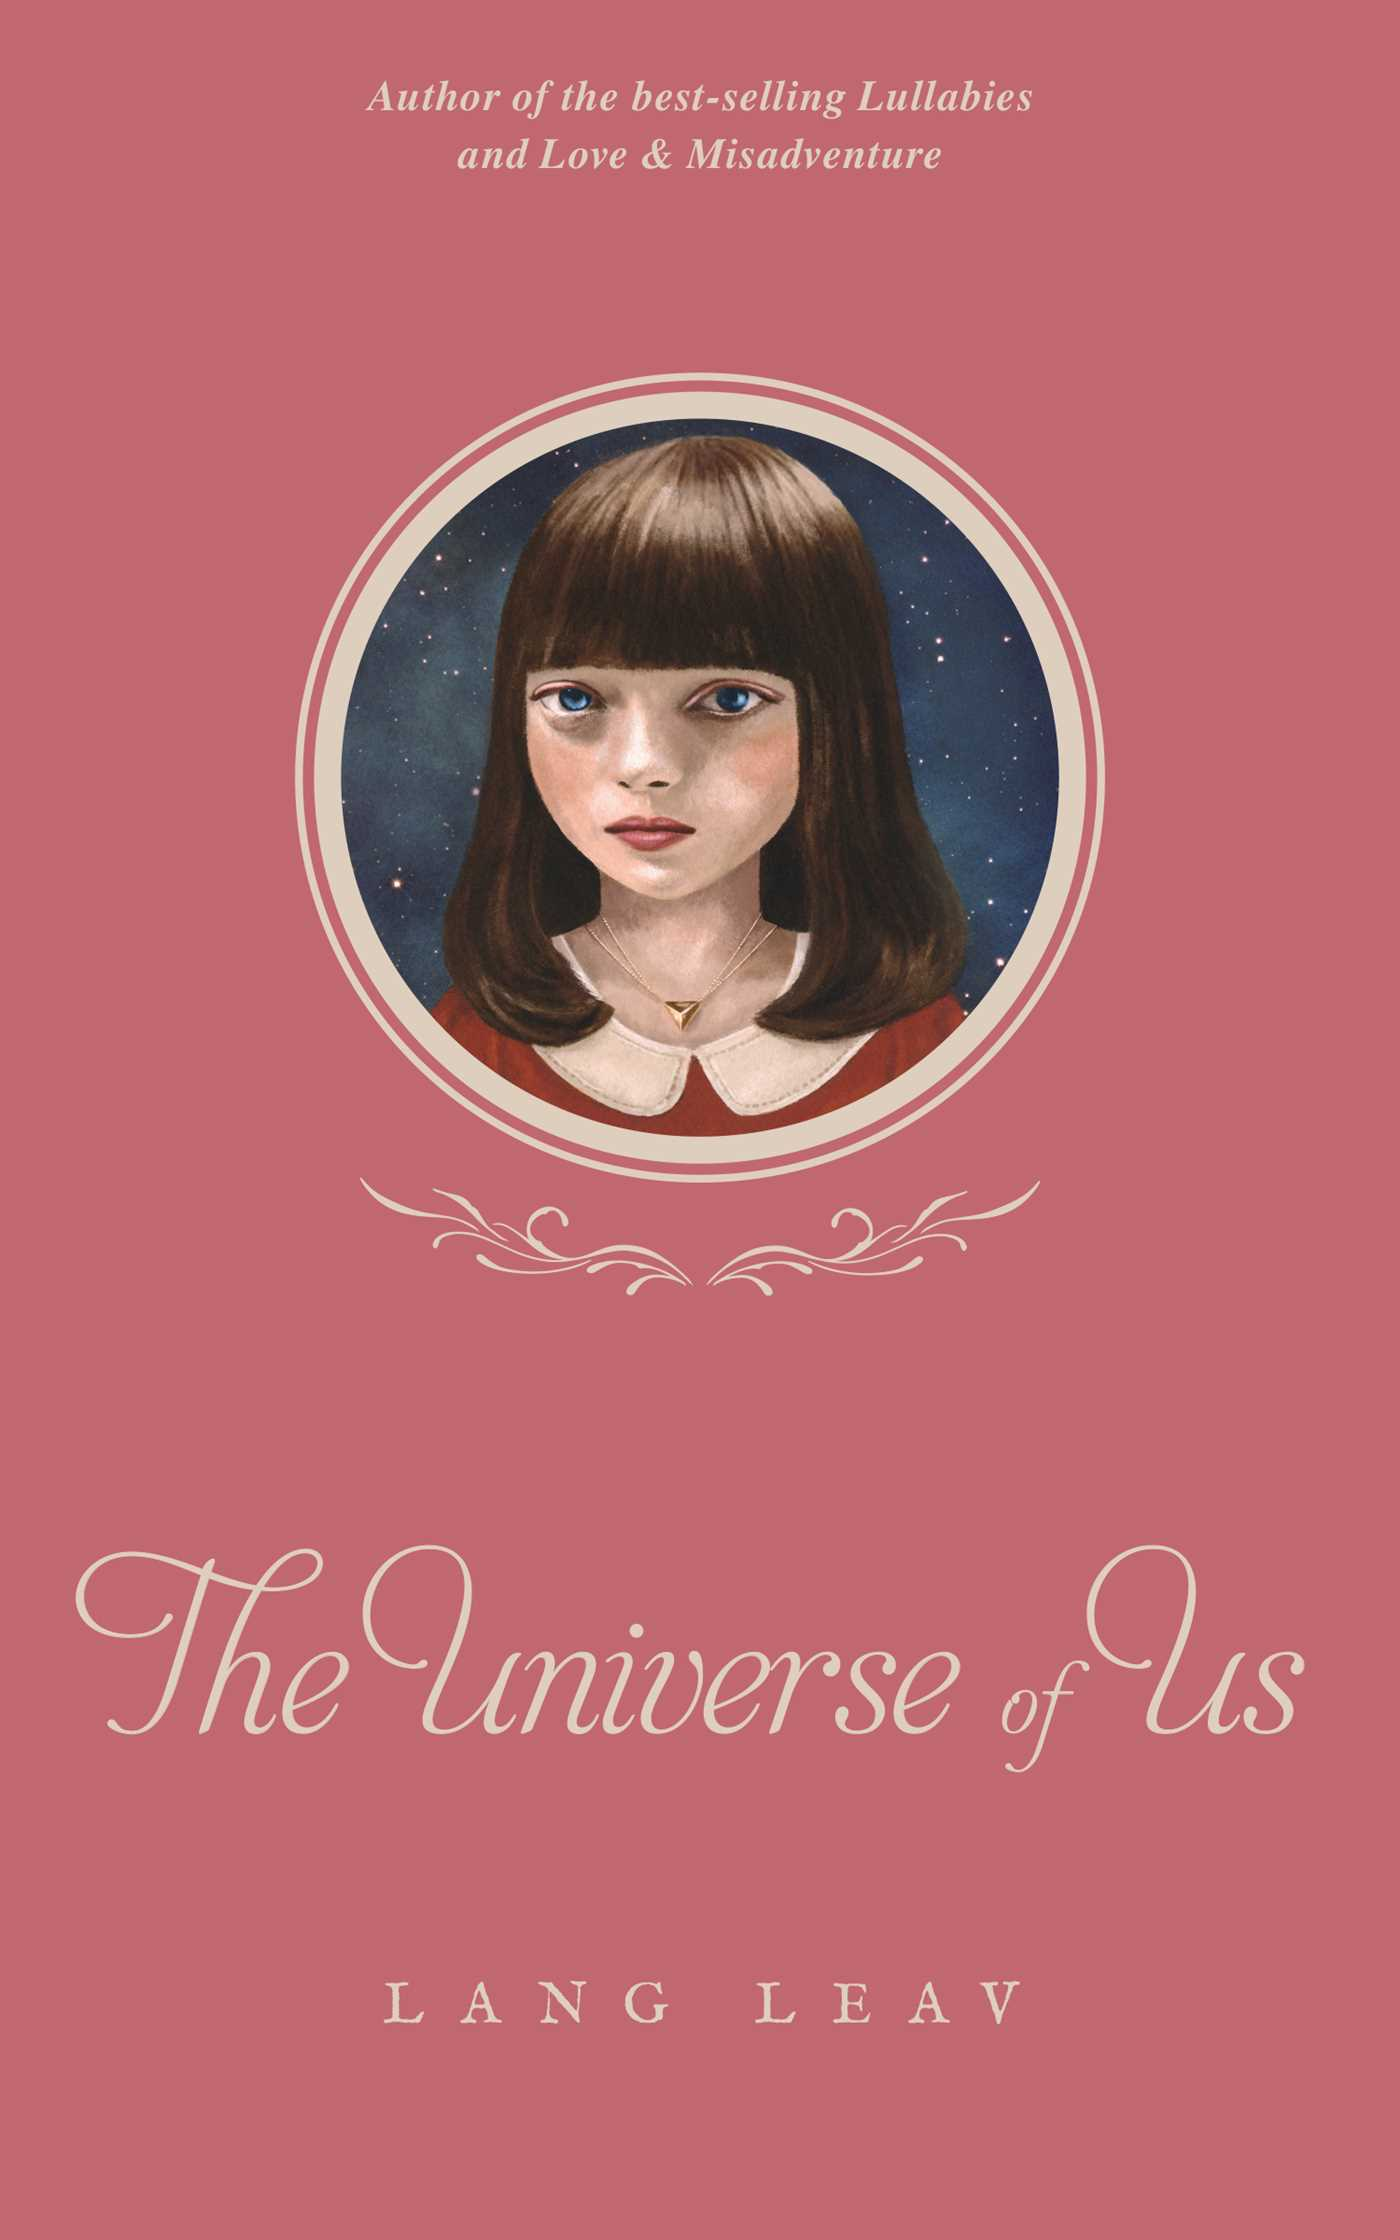 Lang Leav - The Universe of Us